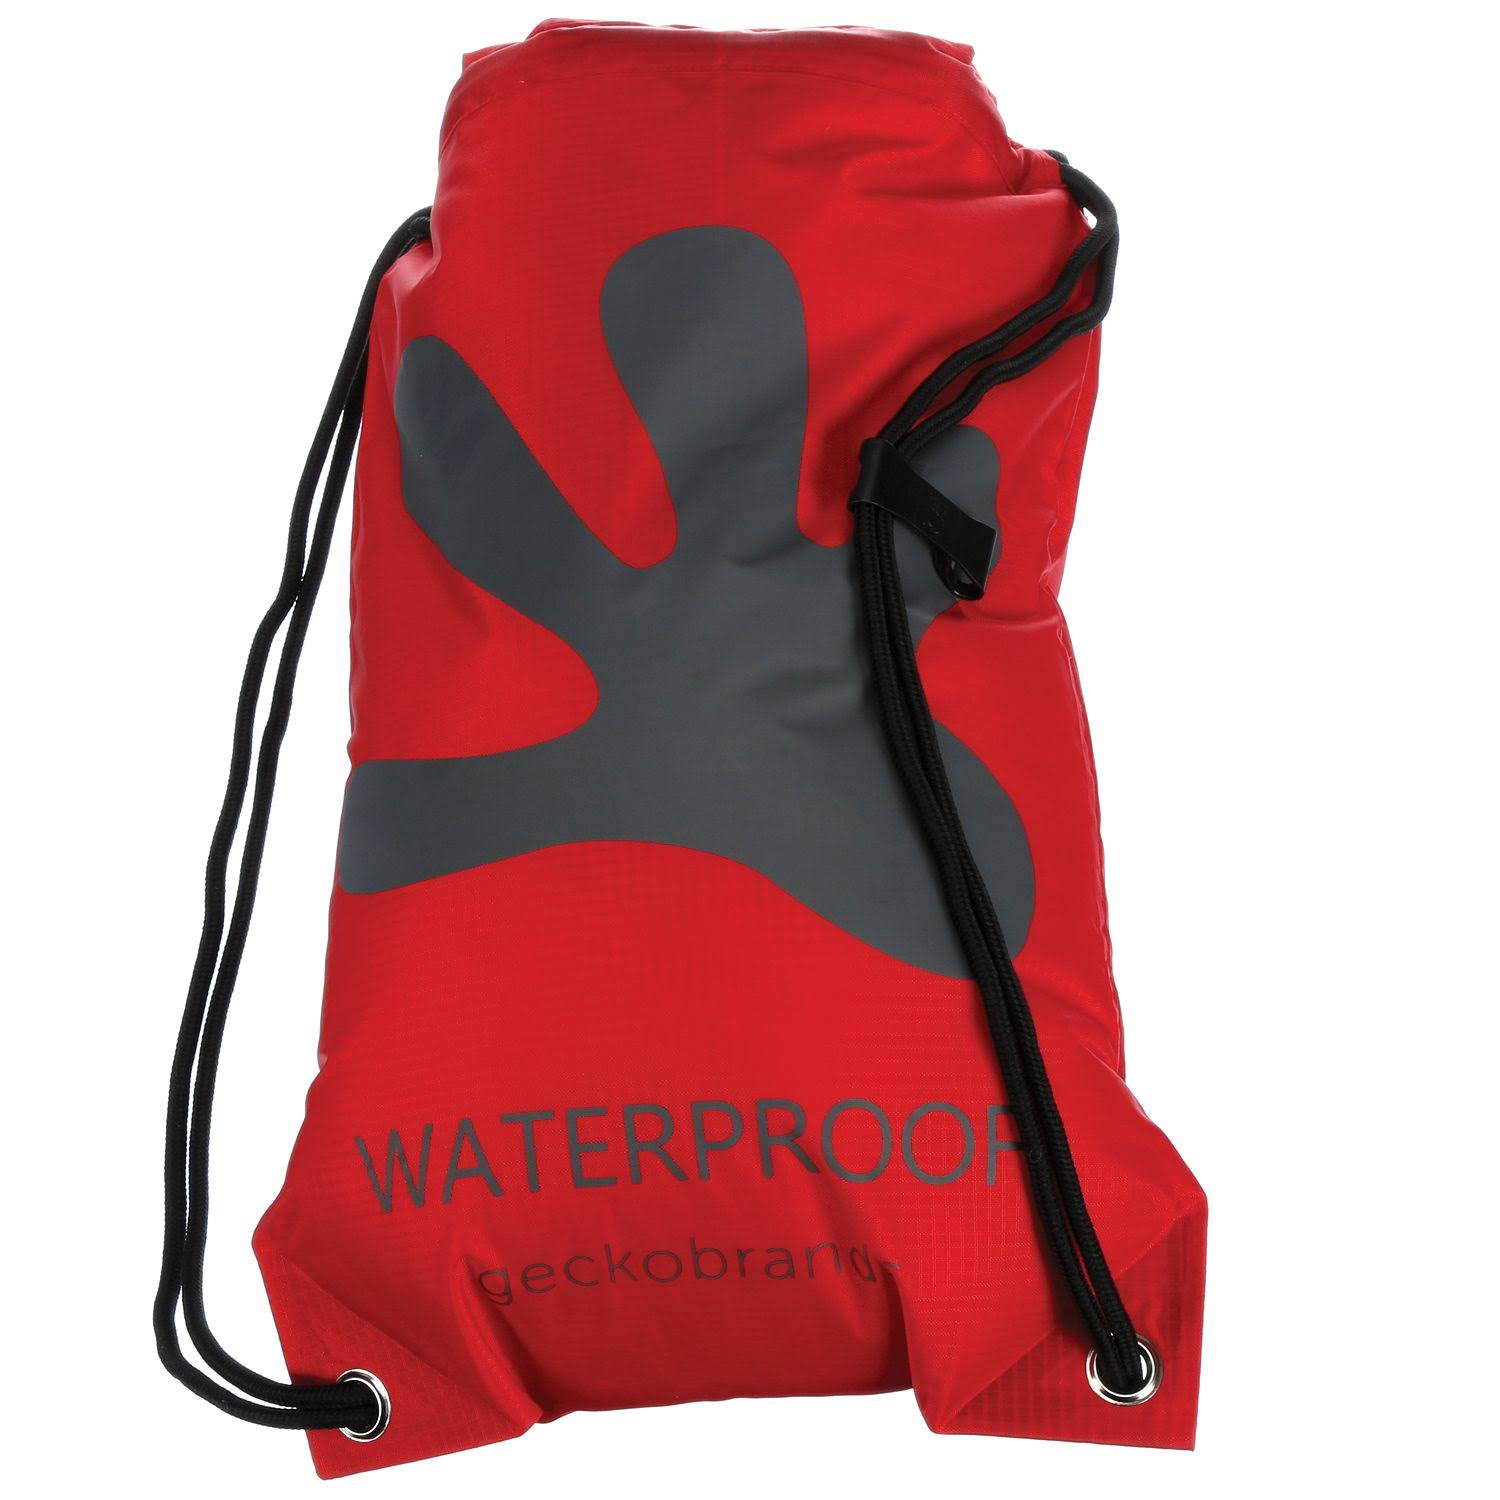 Gecko Unisex Waterproof Drawstring Backpack - Red/Grey, One Size